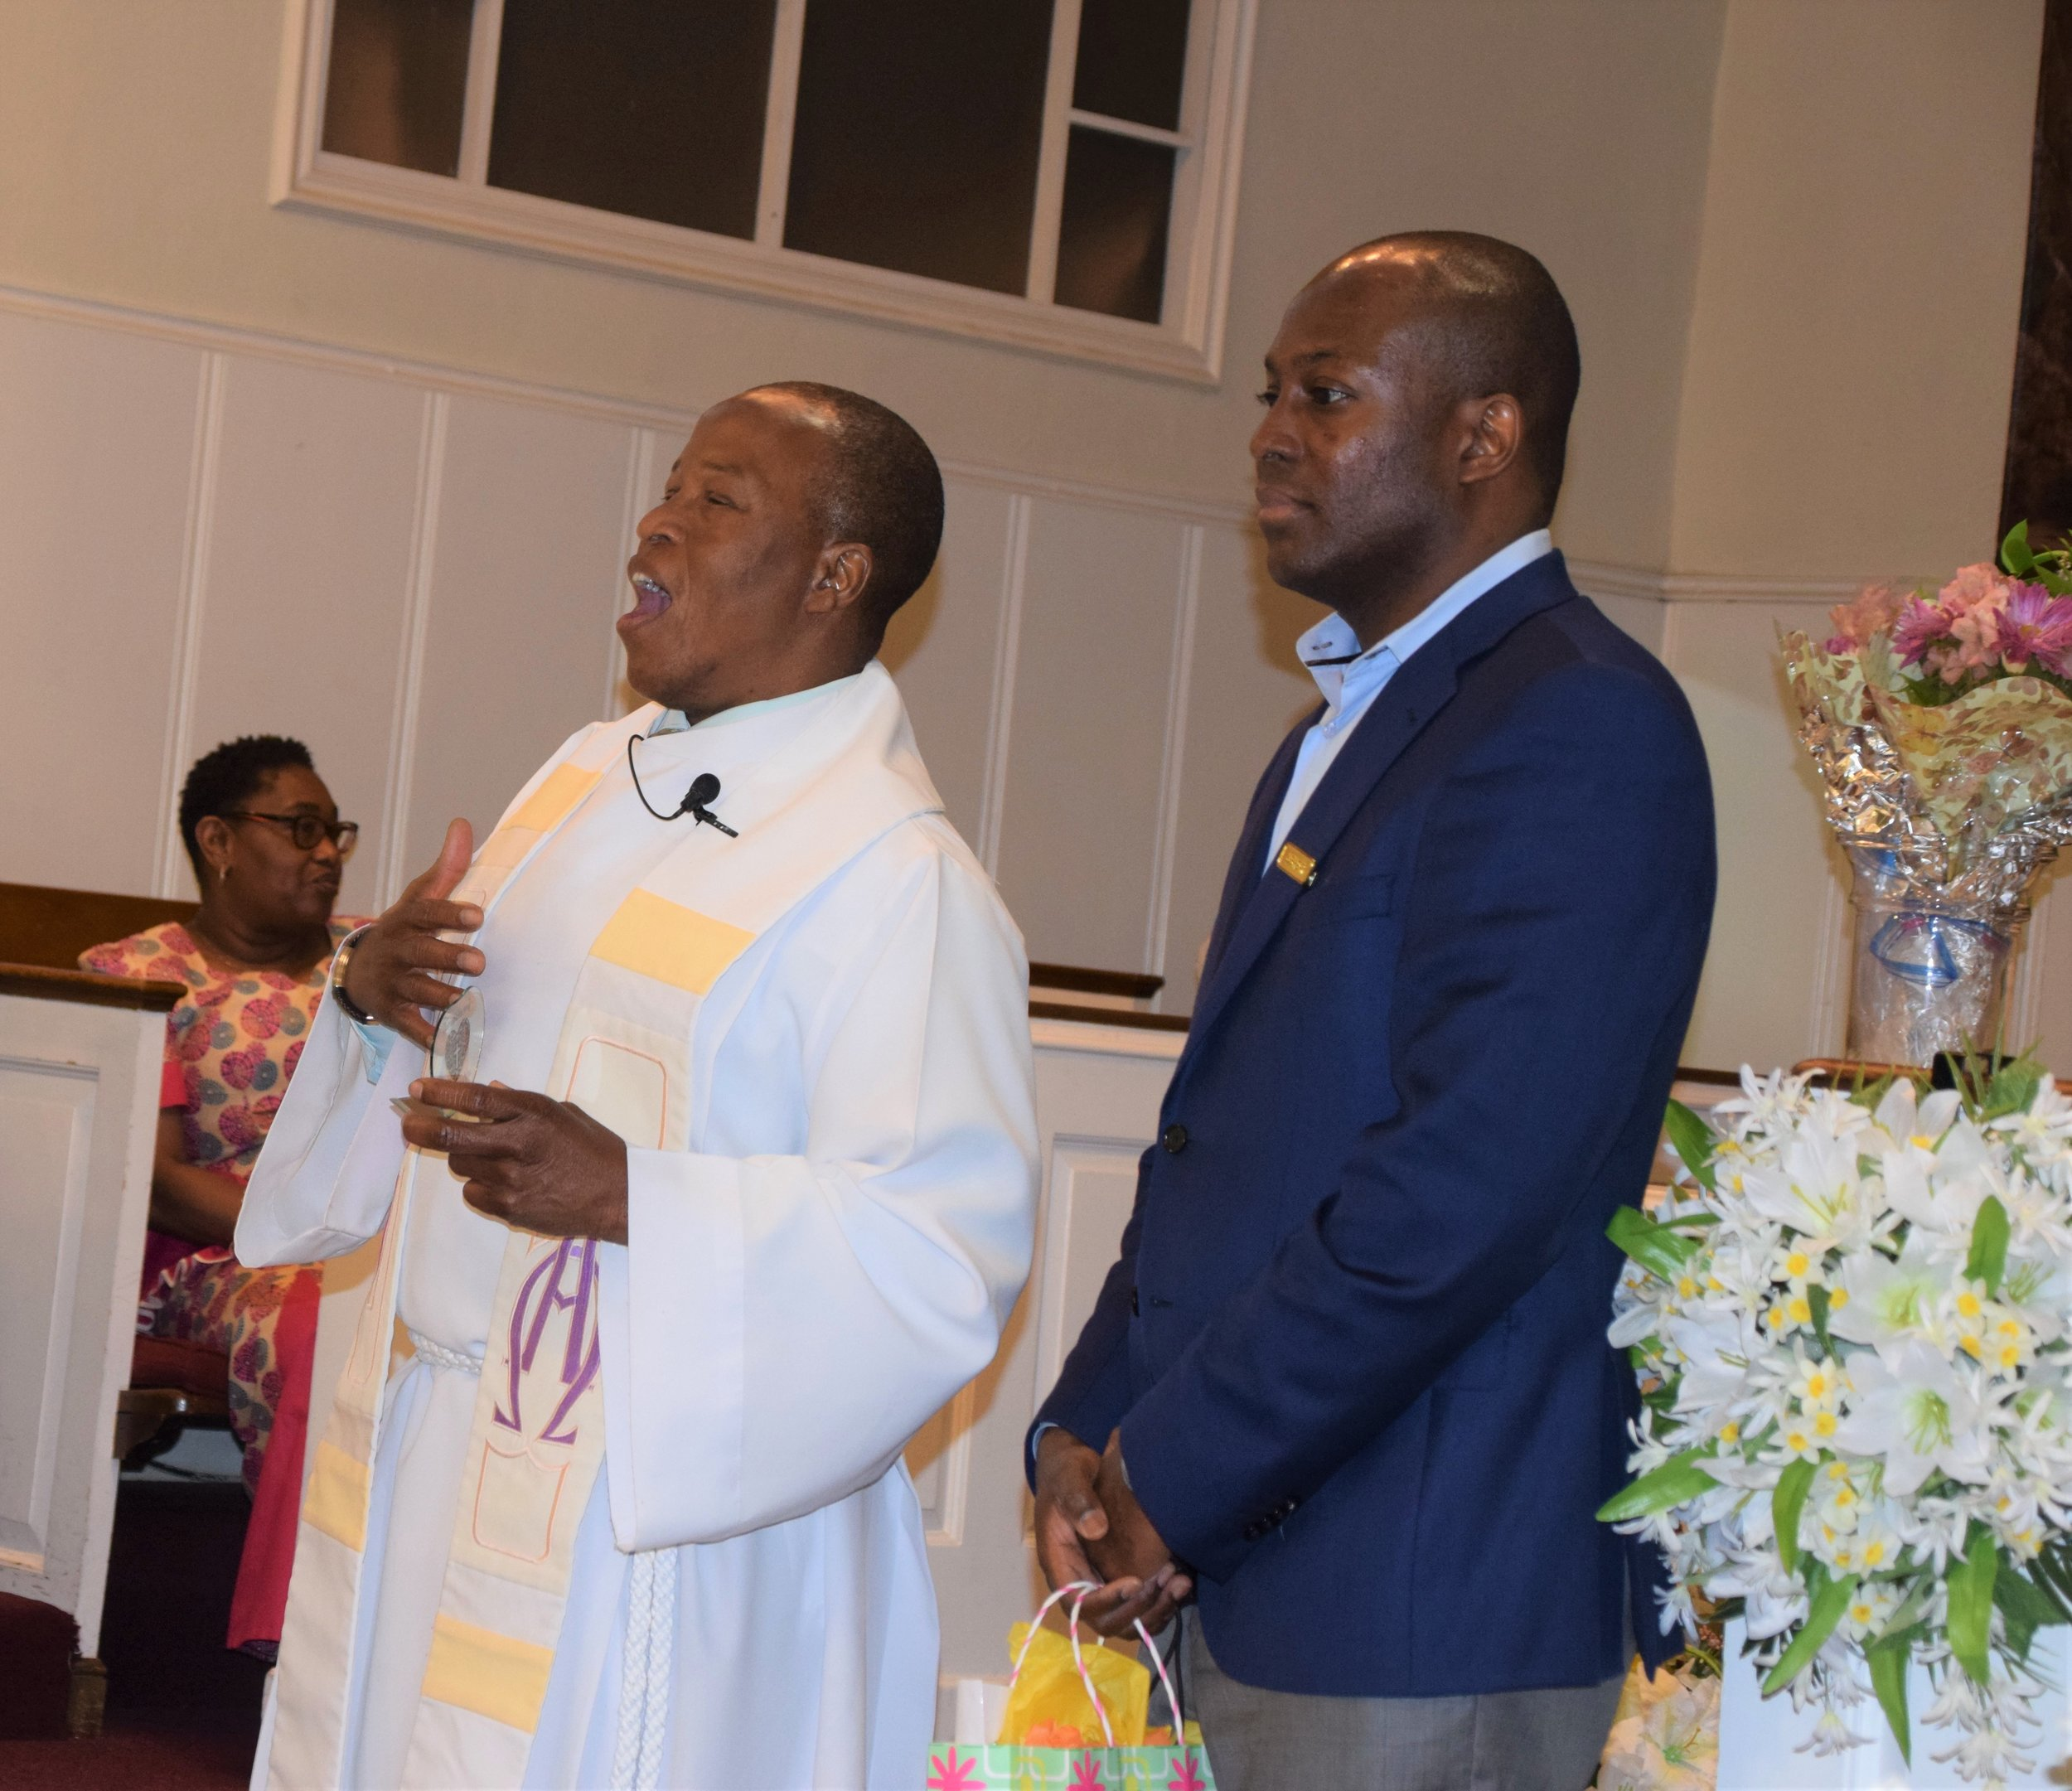 Mother's Day @ St. Paul UMC May 12, 2019 (45).JPG